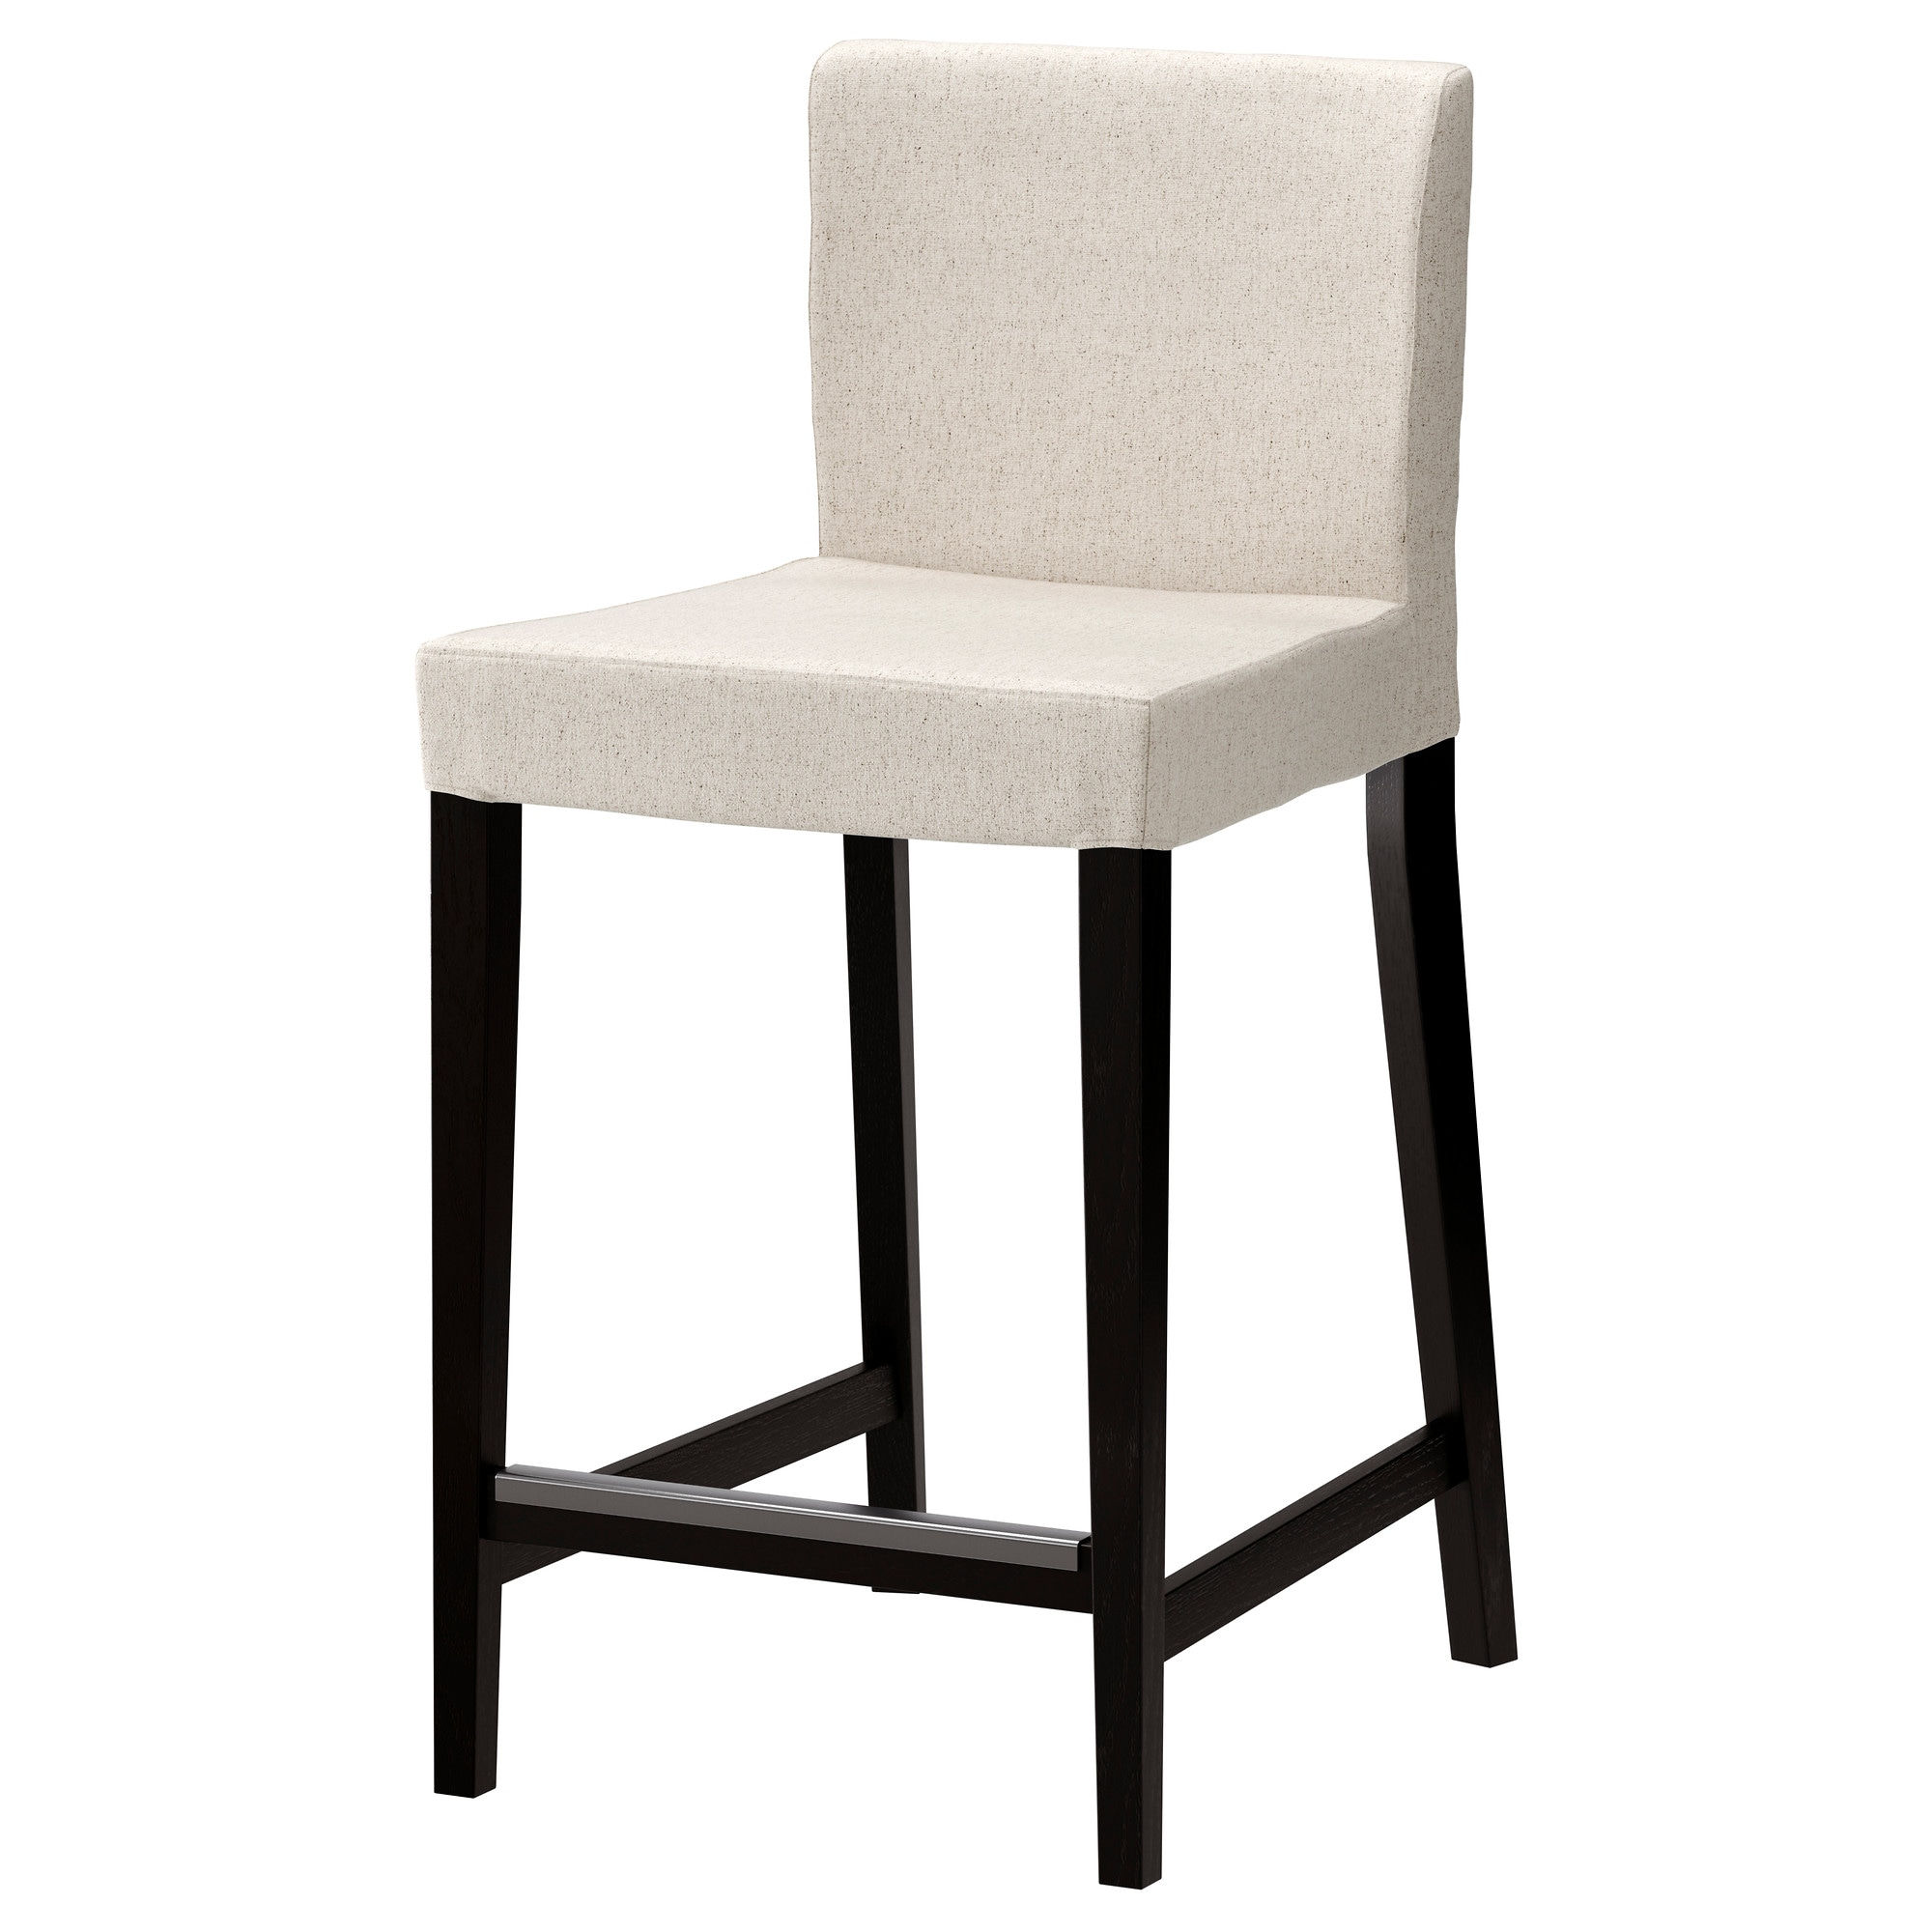 Henriksdal Bar Stool With Backrest 30x19 Ikea